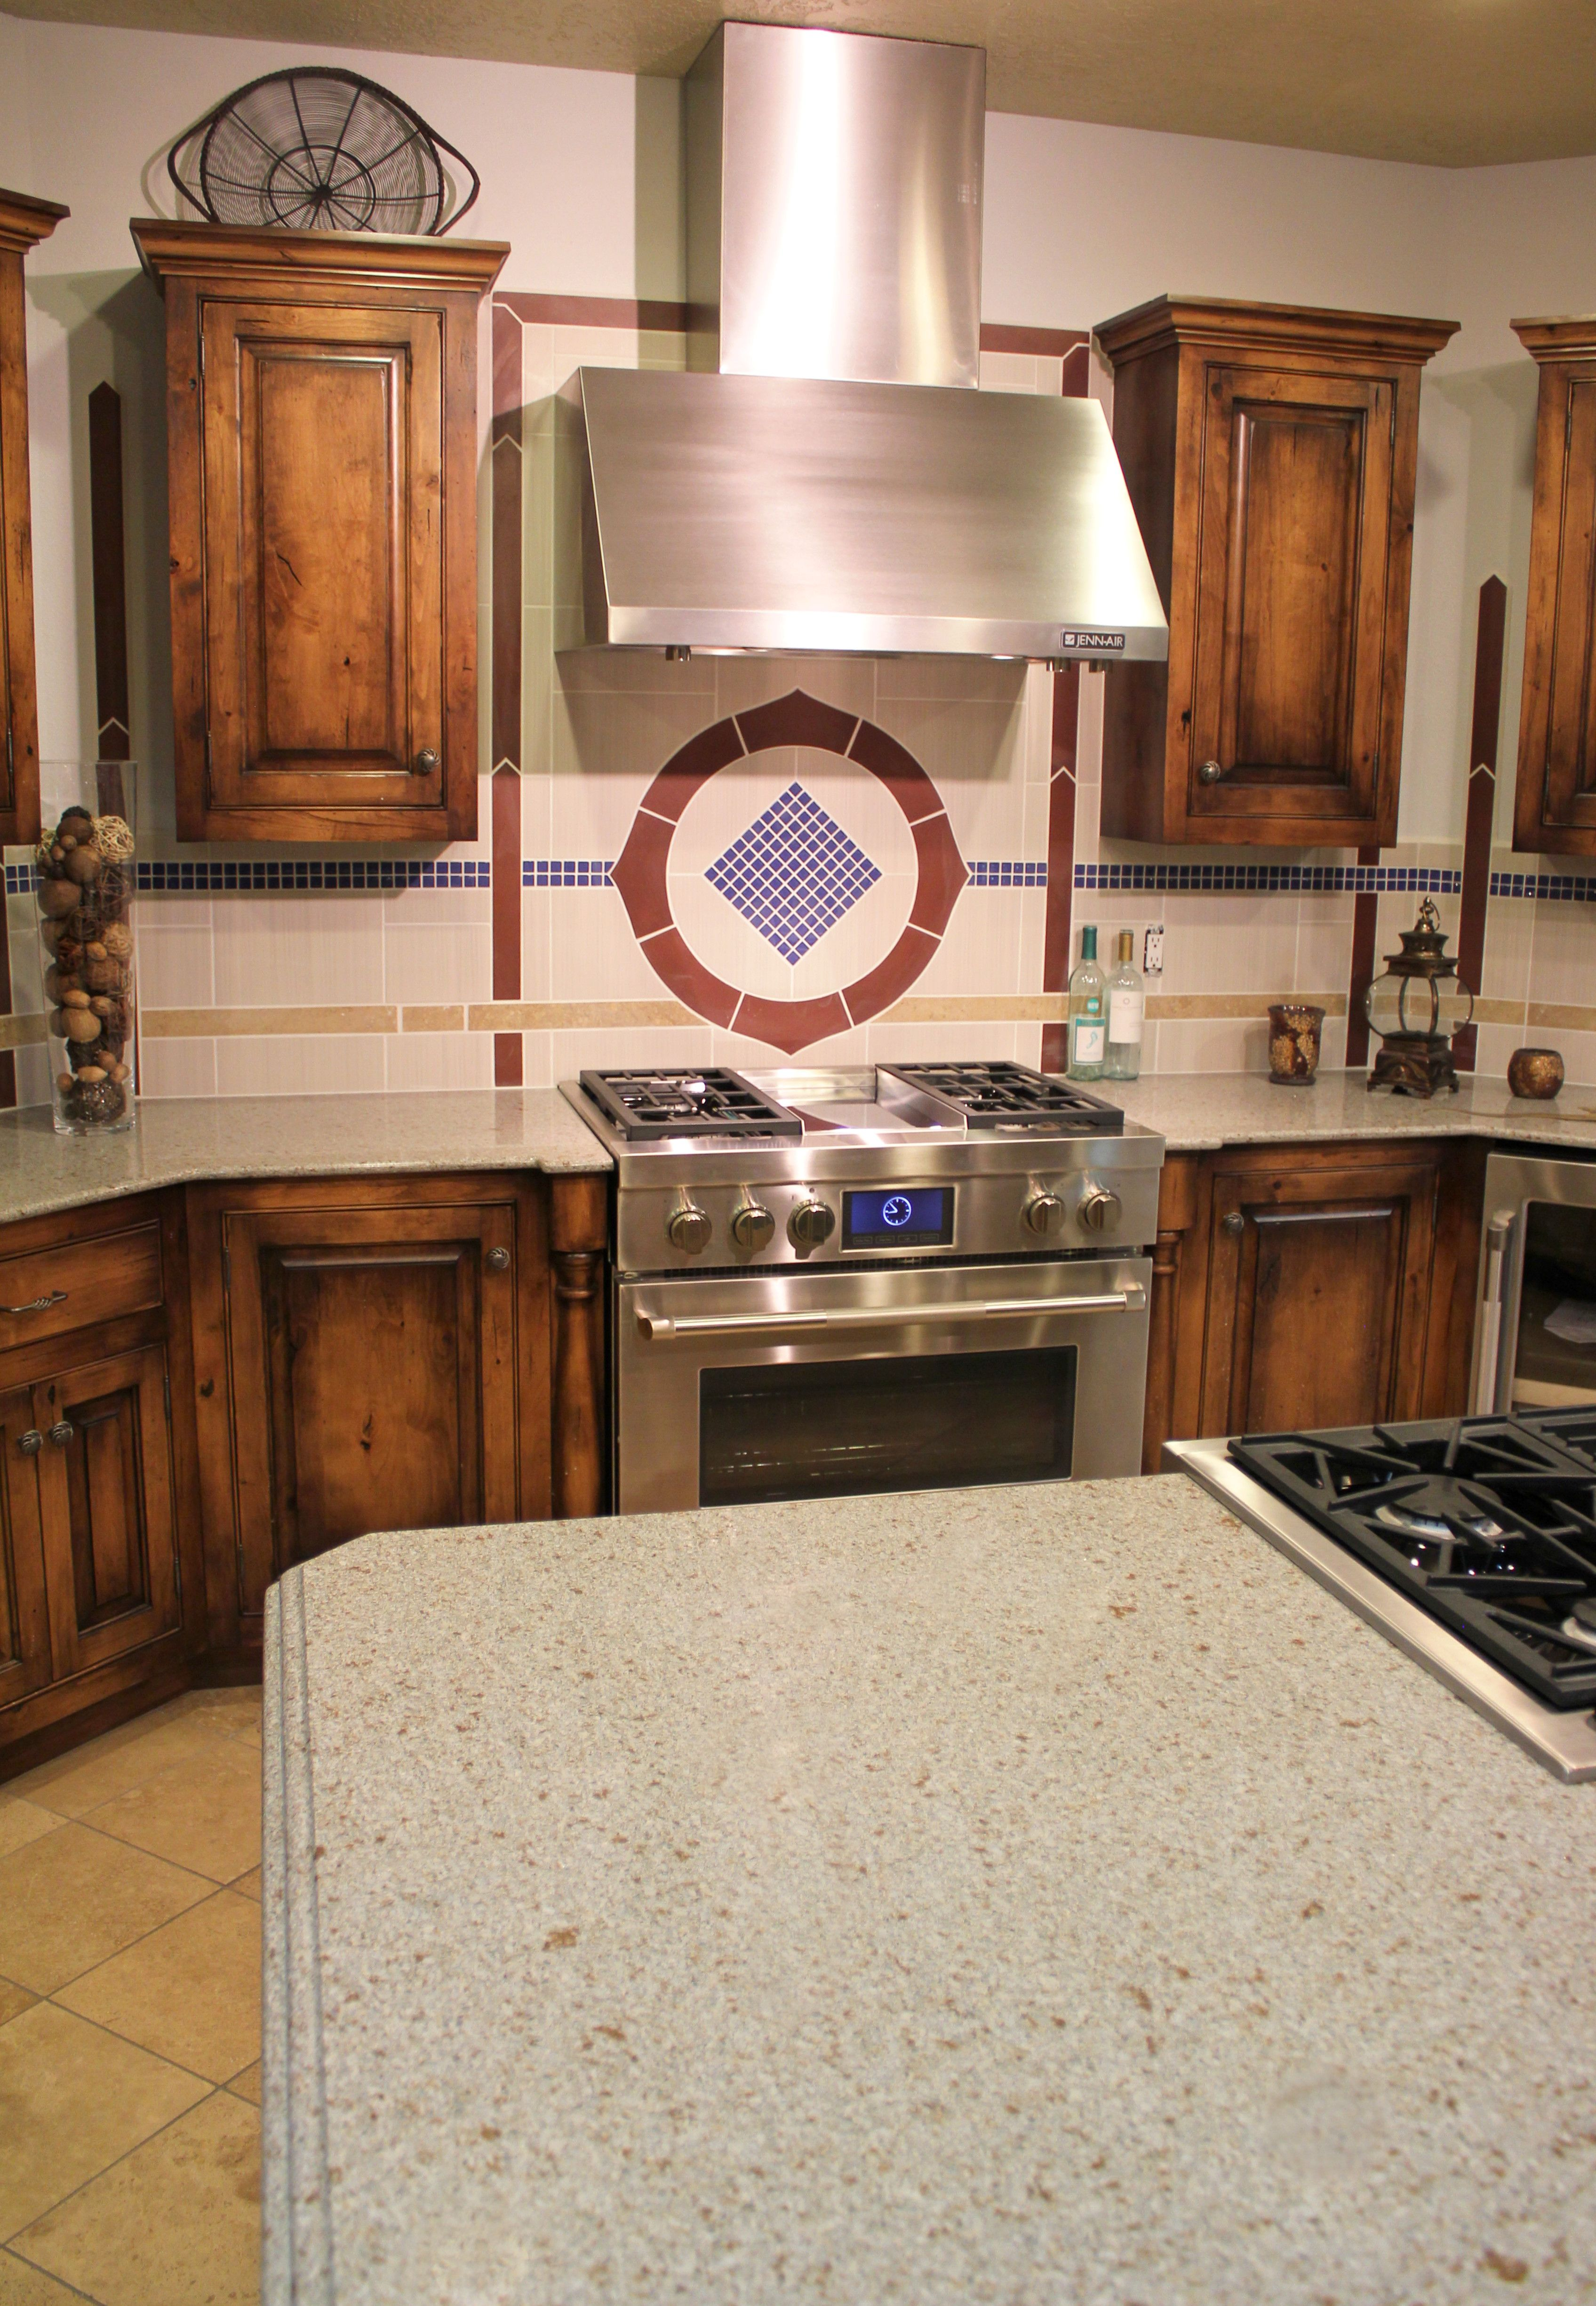 Design Alliance New Mexico Eco Stone Recycled Countertops Color Riverbed Recycled Countertops Kitchen Design Kitchen